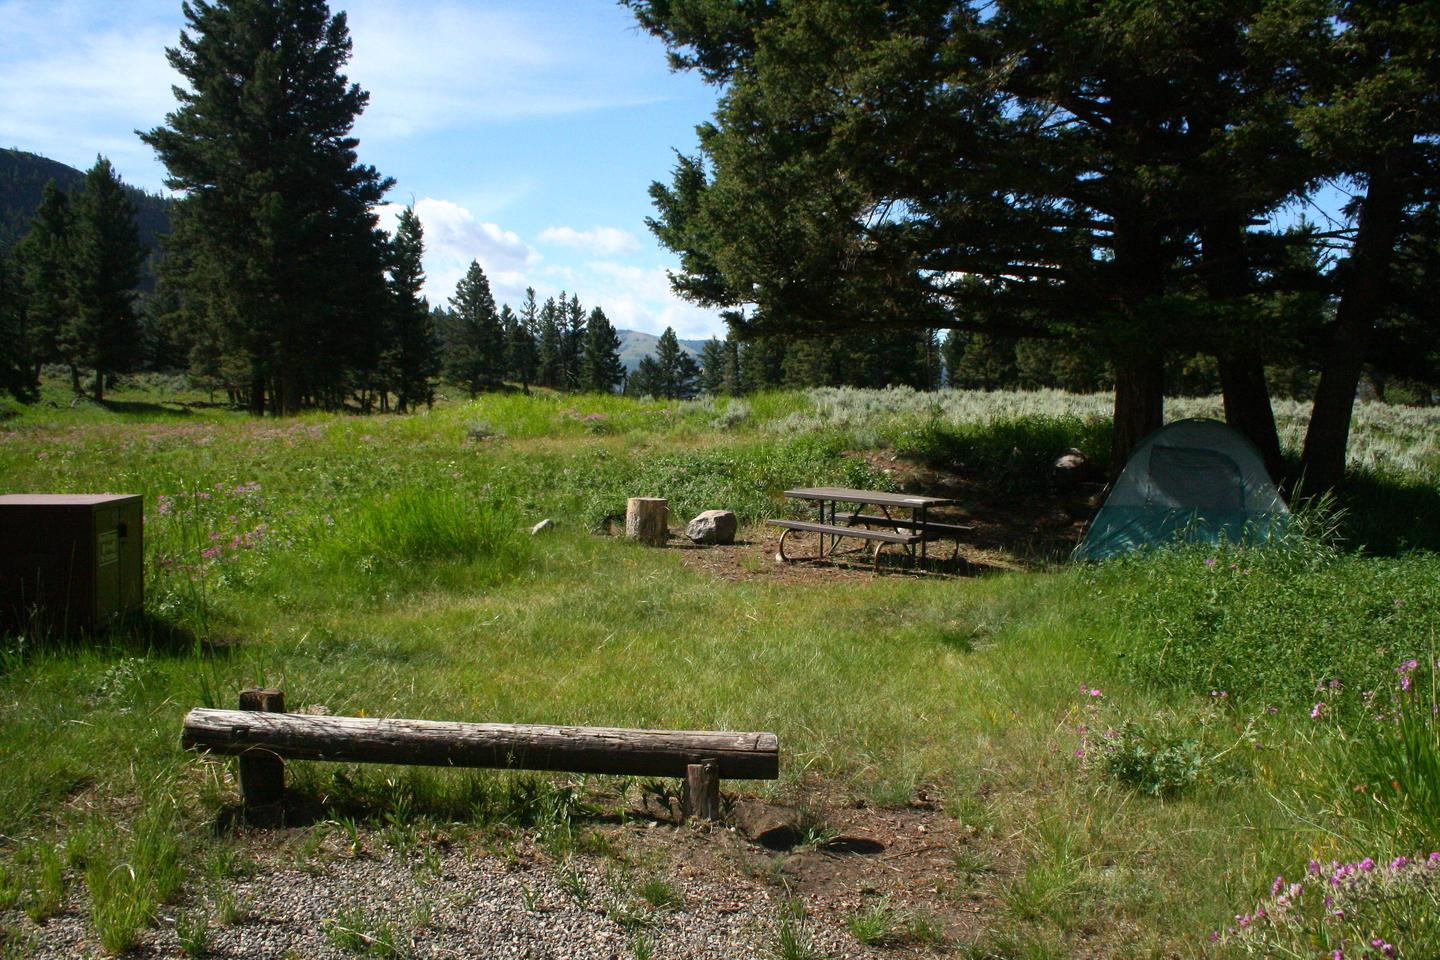 Slough Creek Campground site #8